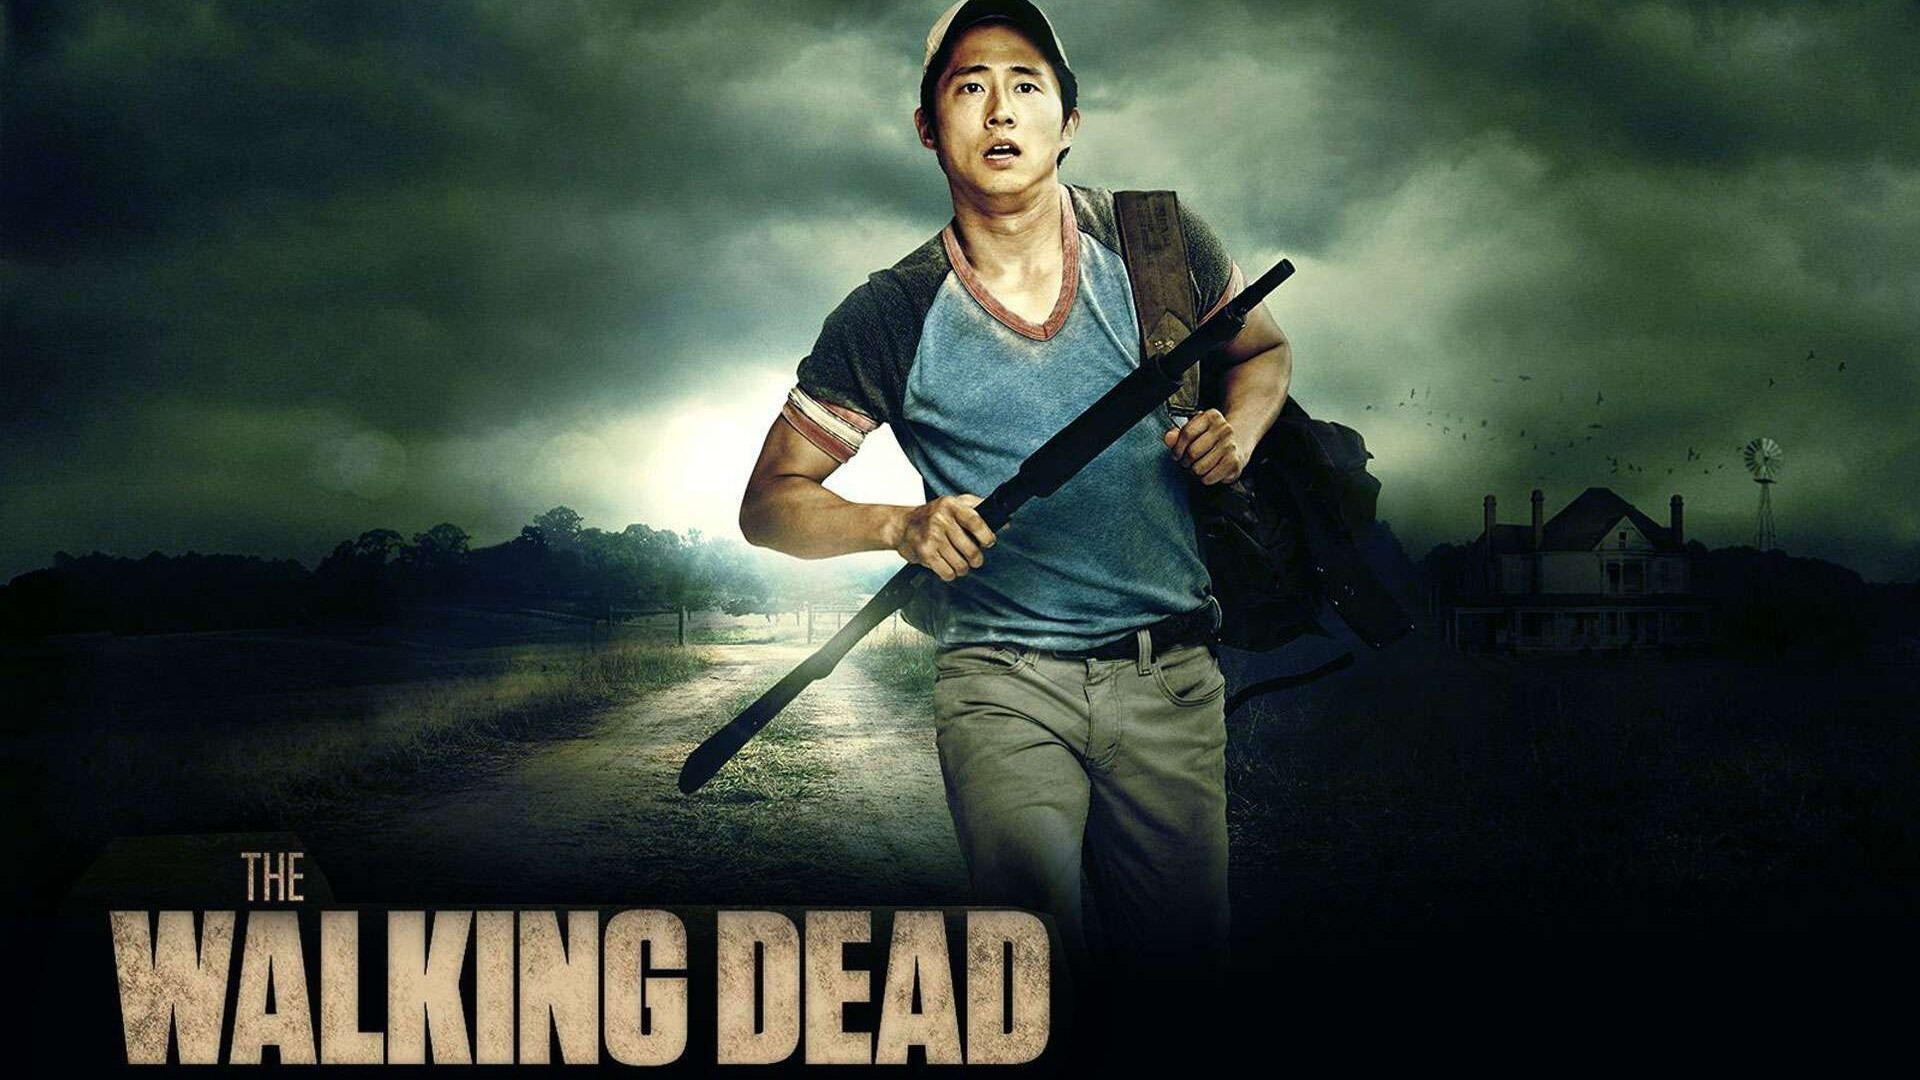 The Walking Dead Wallpapers 1920x1080